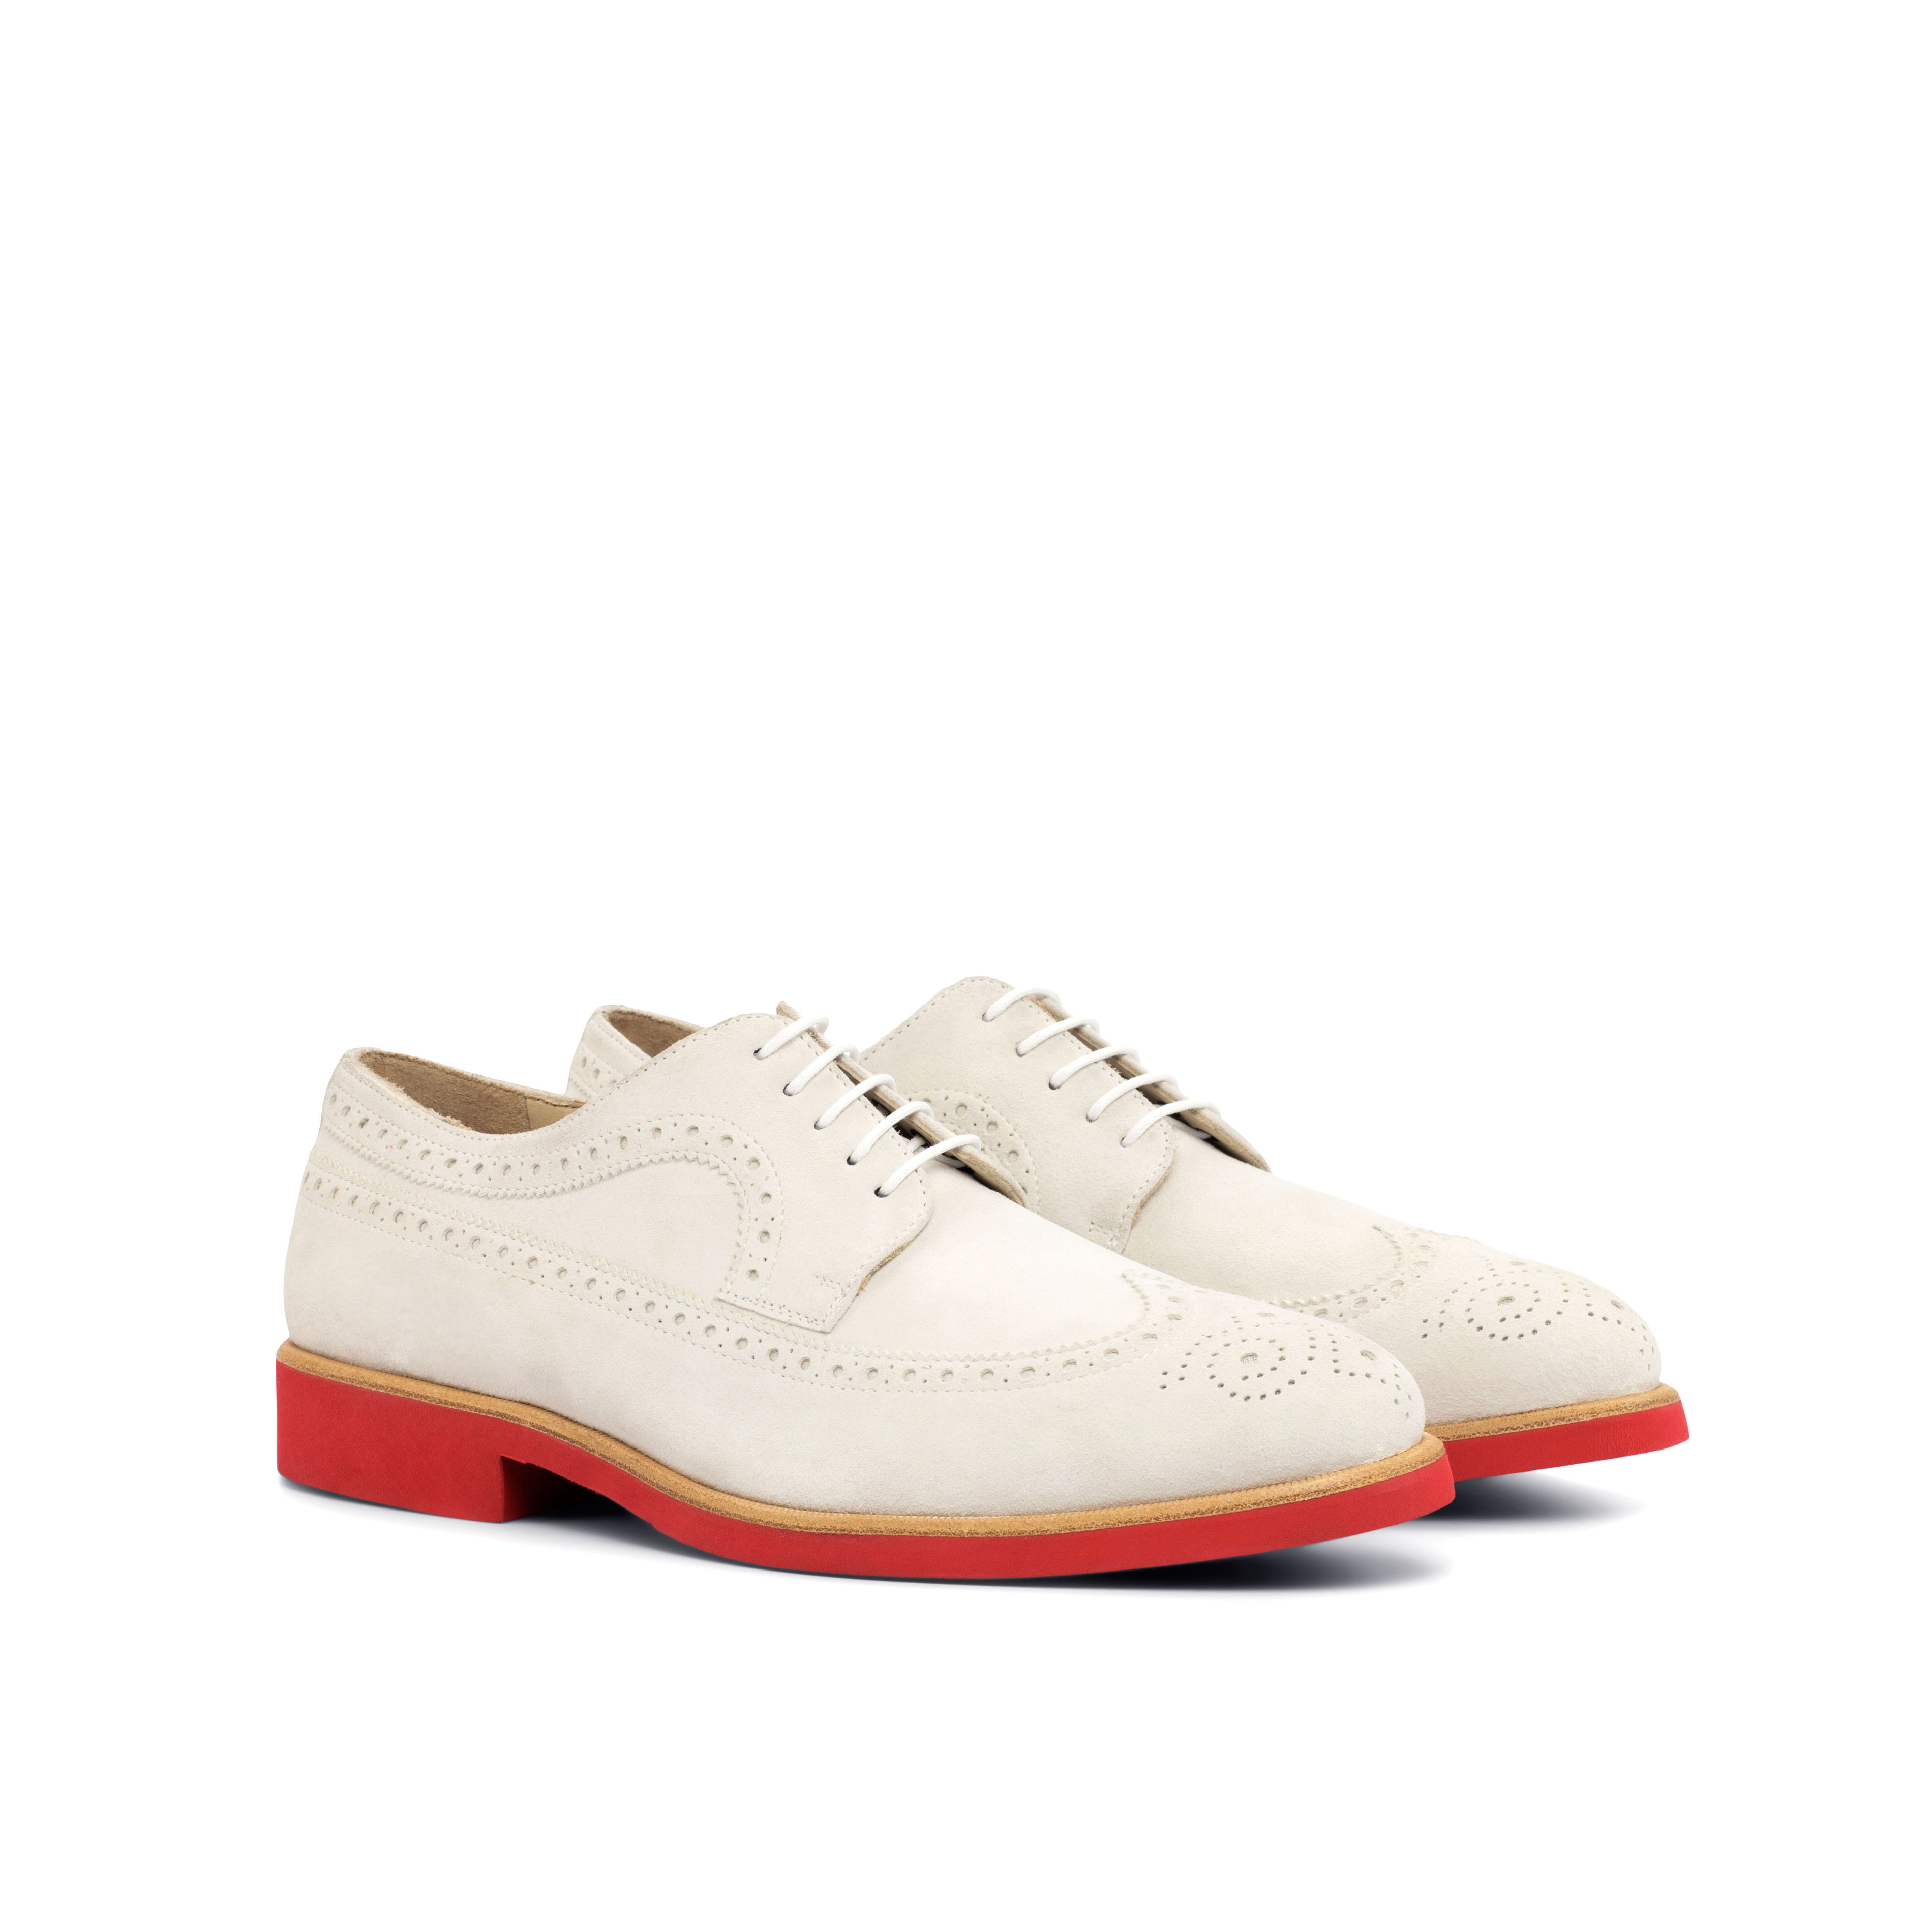 White Kid Suede Longwing Blucher